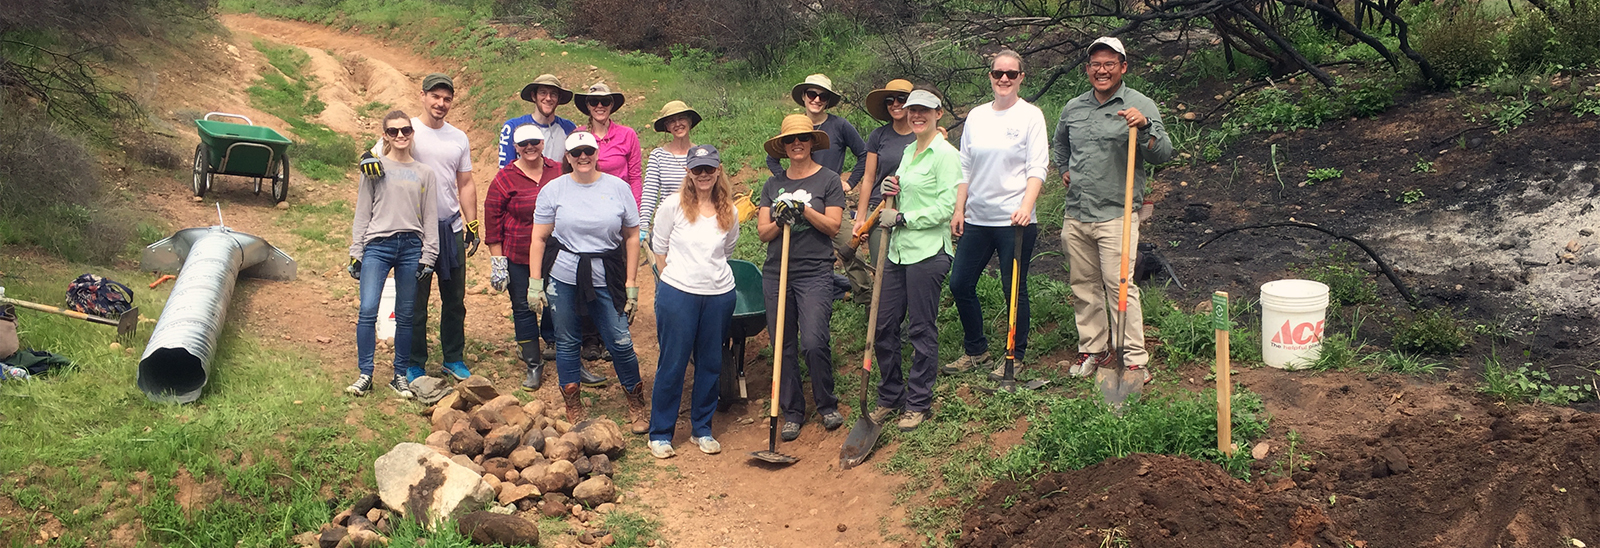 GPA Consulting Staff Repairs Trail